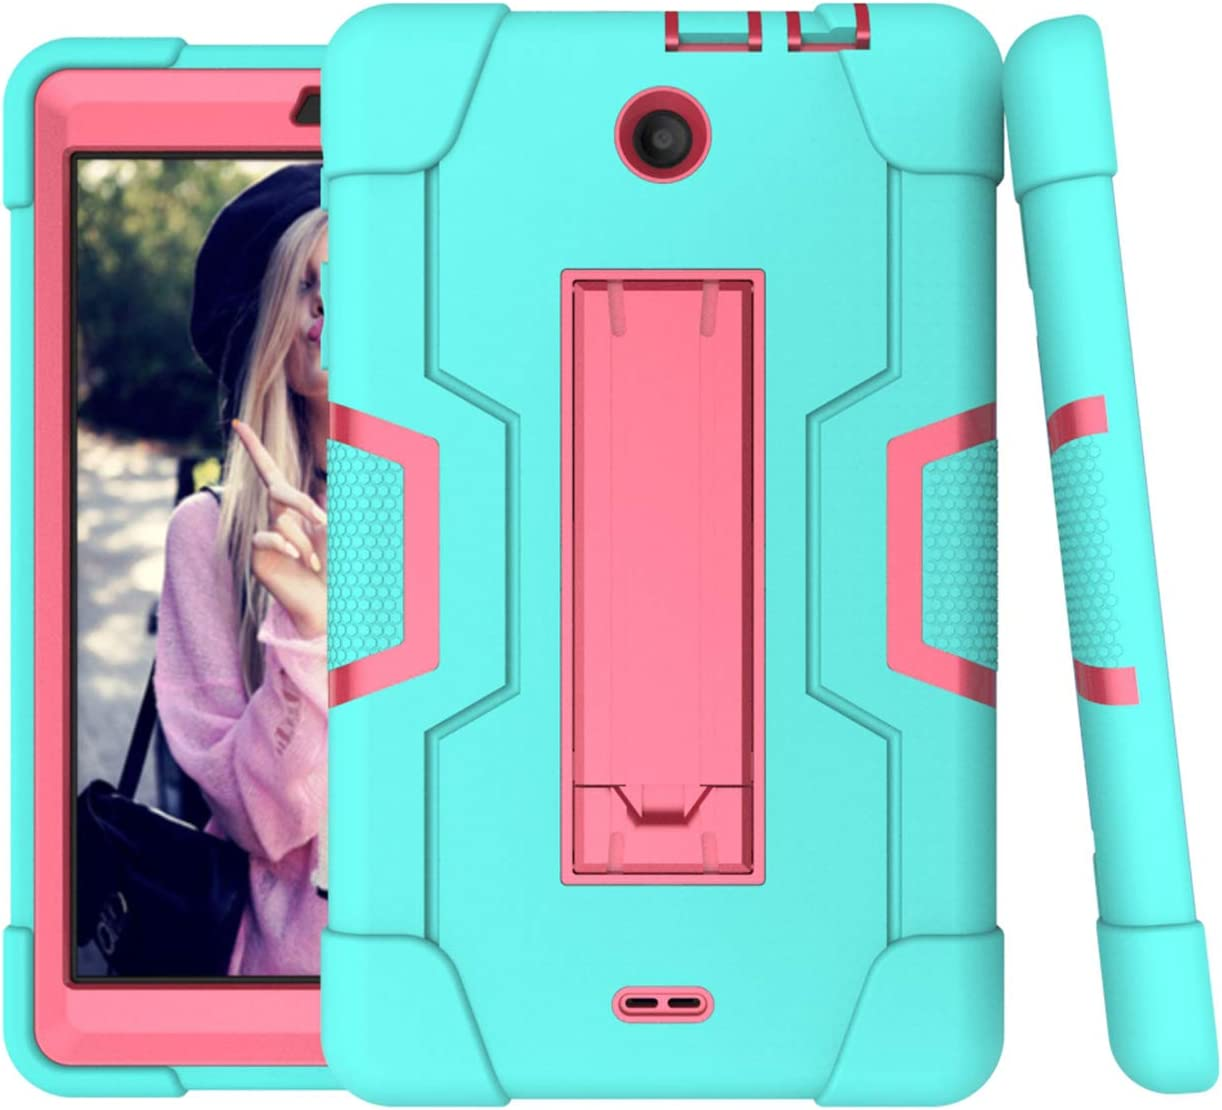 For Alcatel 3T 8.0 Case,Alcatel Joy Tab 8.0 Case,Cherrry Heavy Duty Rugged Hybrid Shockproof Full-Body Protective Case Build in Kickstand W/Screen Protector Film/Stylus Pen(Green/Pink)